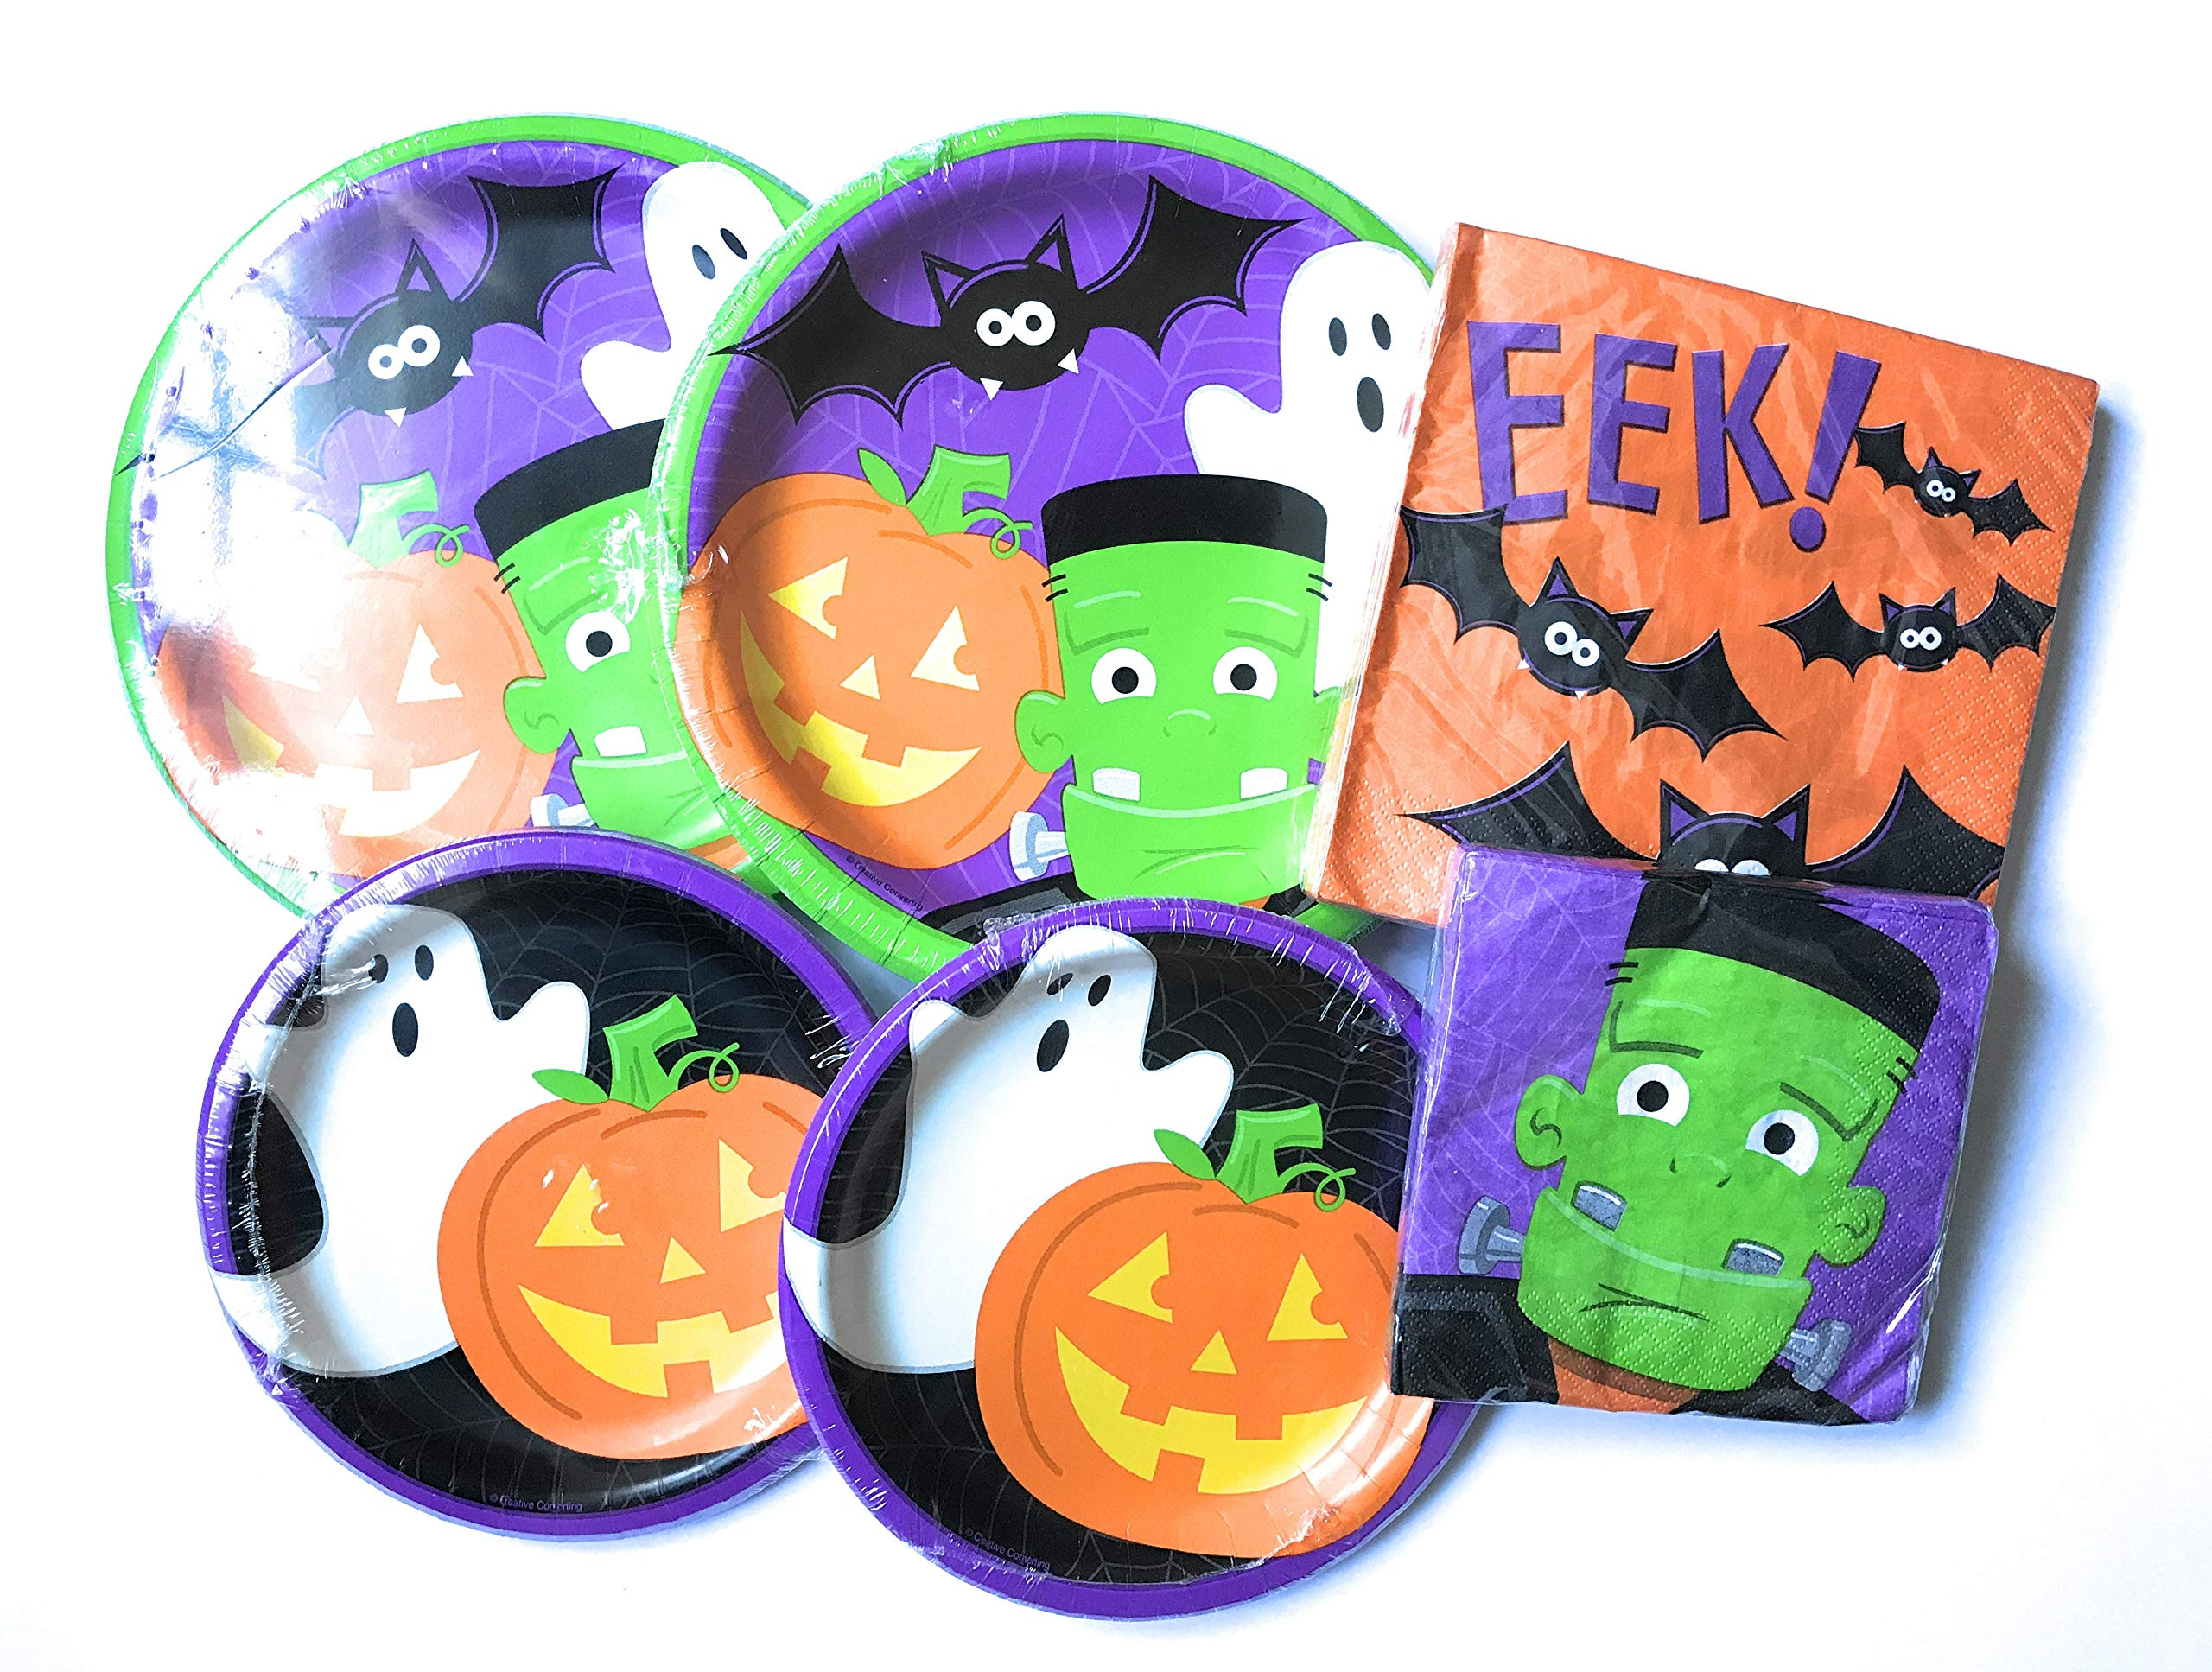 Halloween Paper Plates and Napkins - Friendly Monsters Halloween Plates and Napkins - 64 Total Pieces - Cute, Durable and Great Value! by RLP Marketing LLC